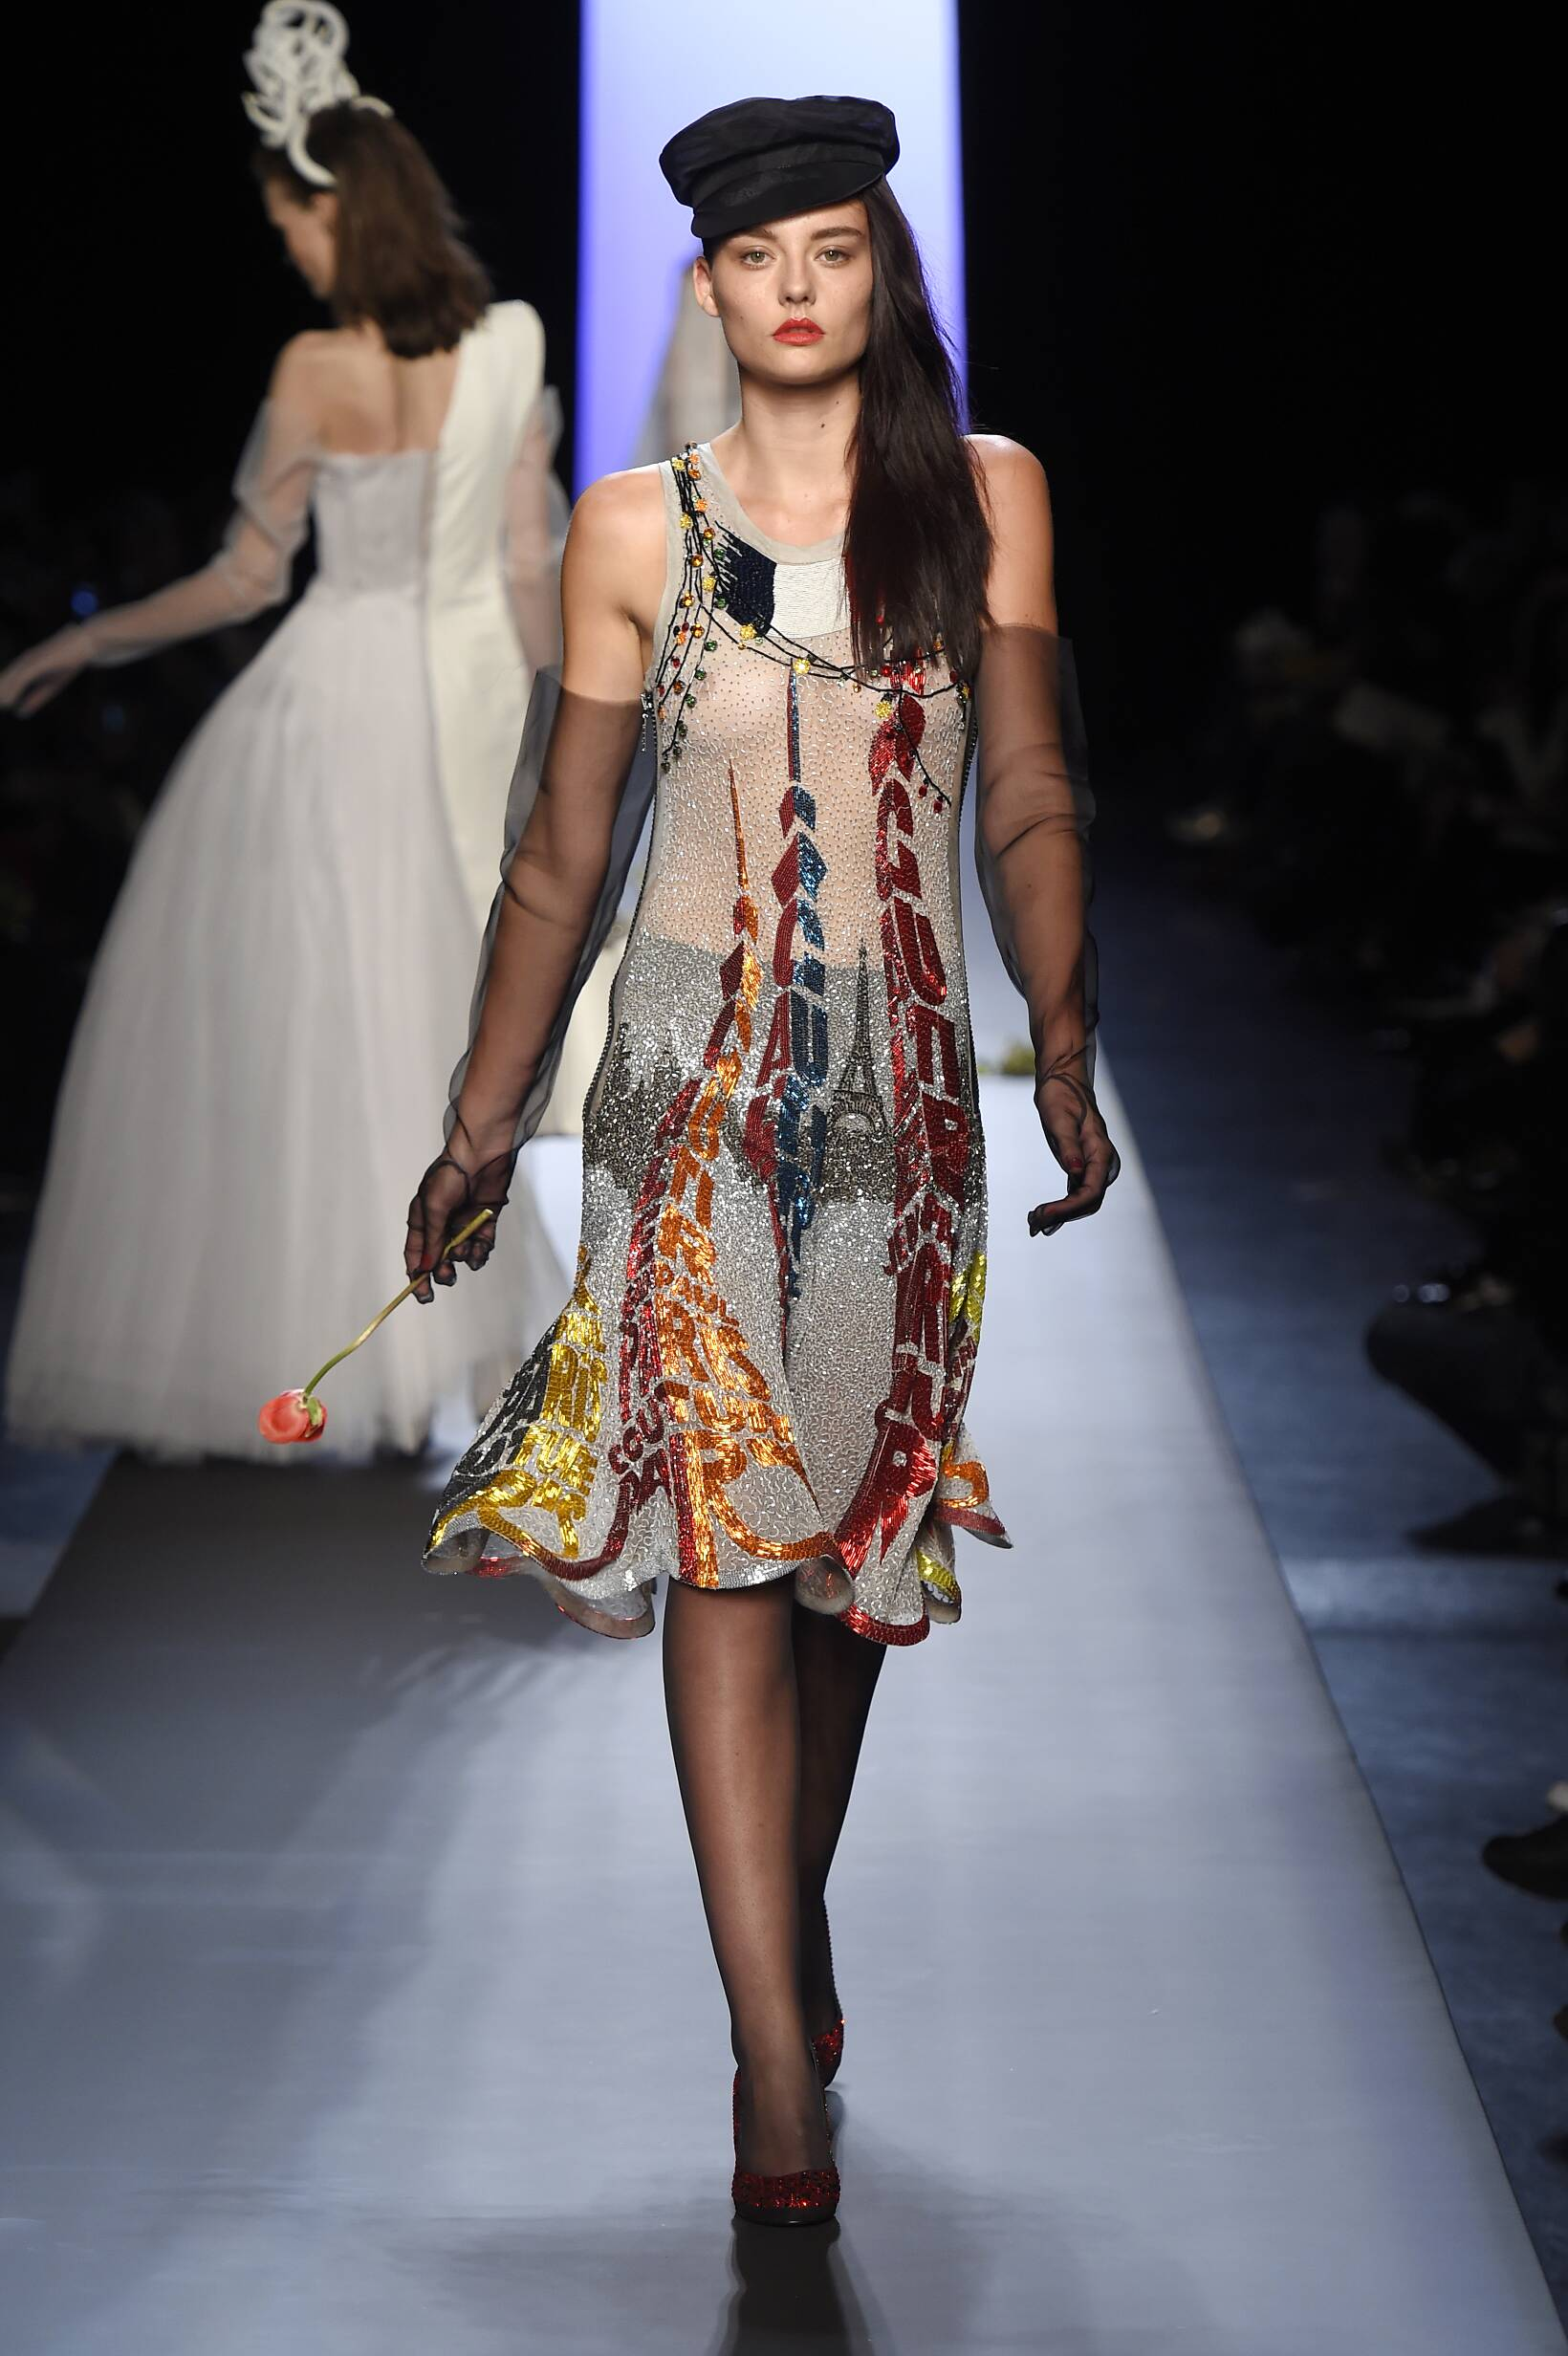 Fashion Summer Trends 2015 Jean Paul Gaultier Haute Couture